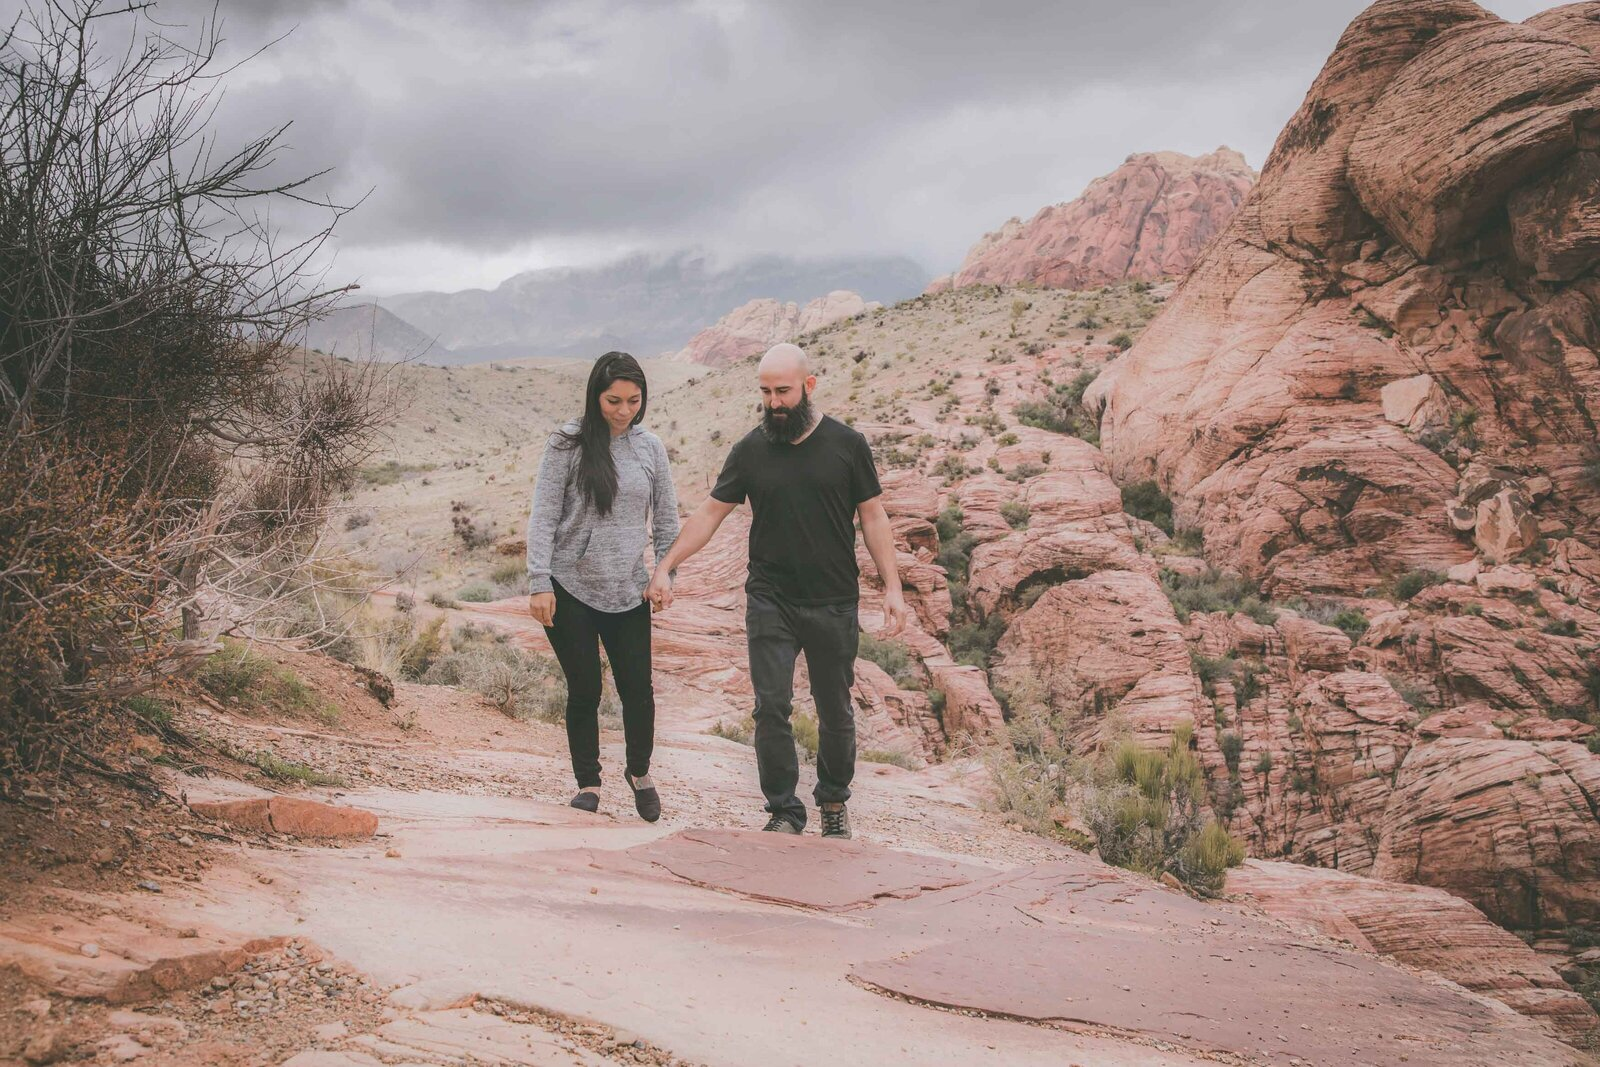 Couple walks on red rocks among amazing views.